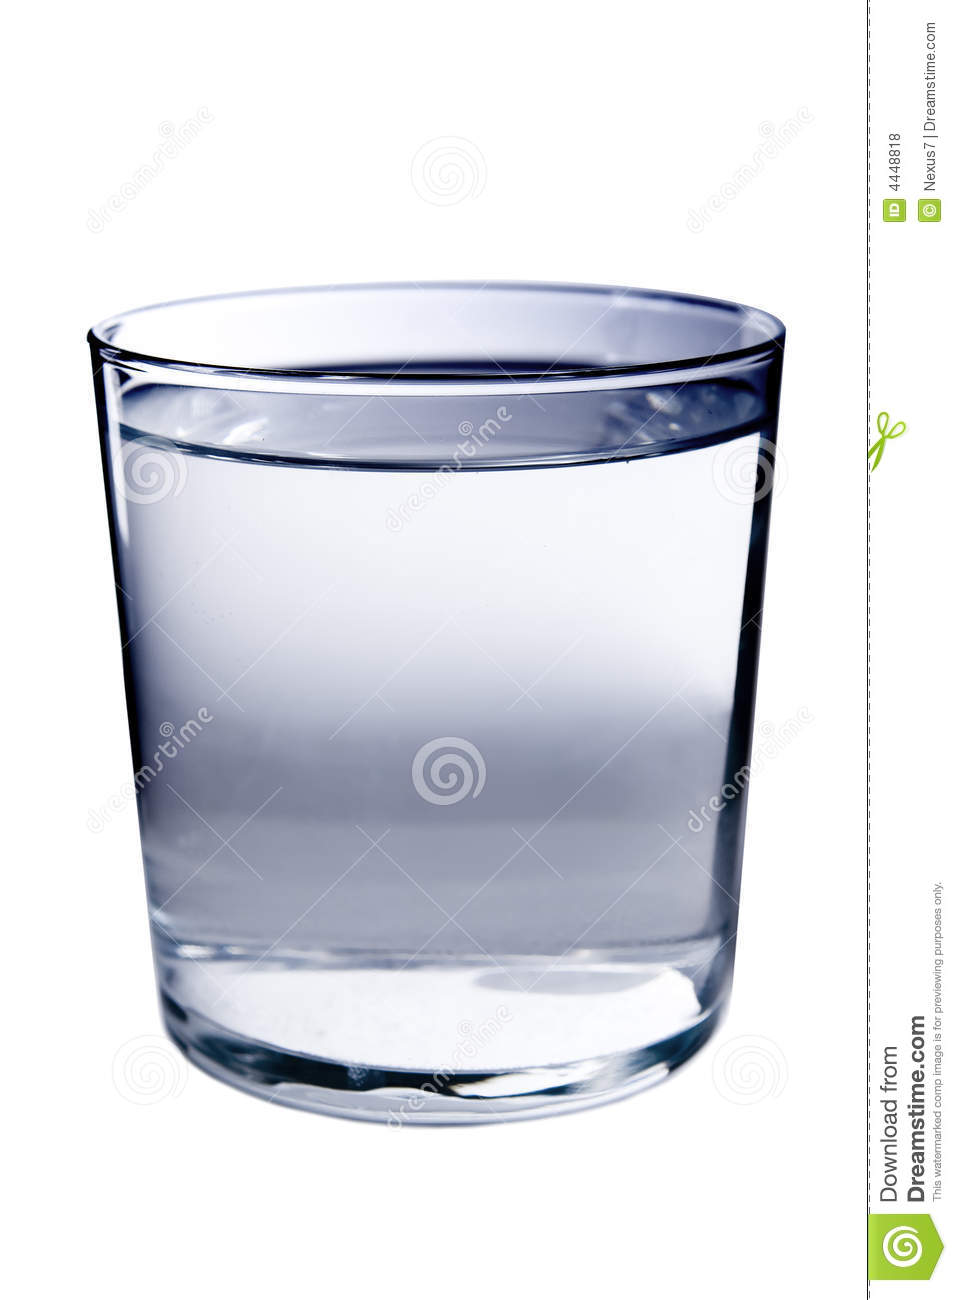 Full glass of water images galleries for Water glass images